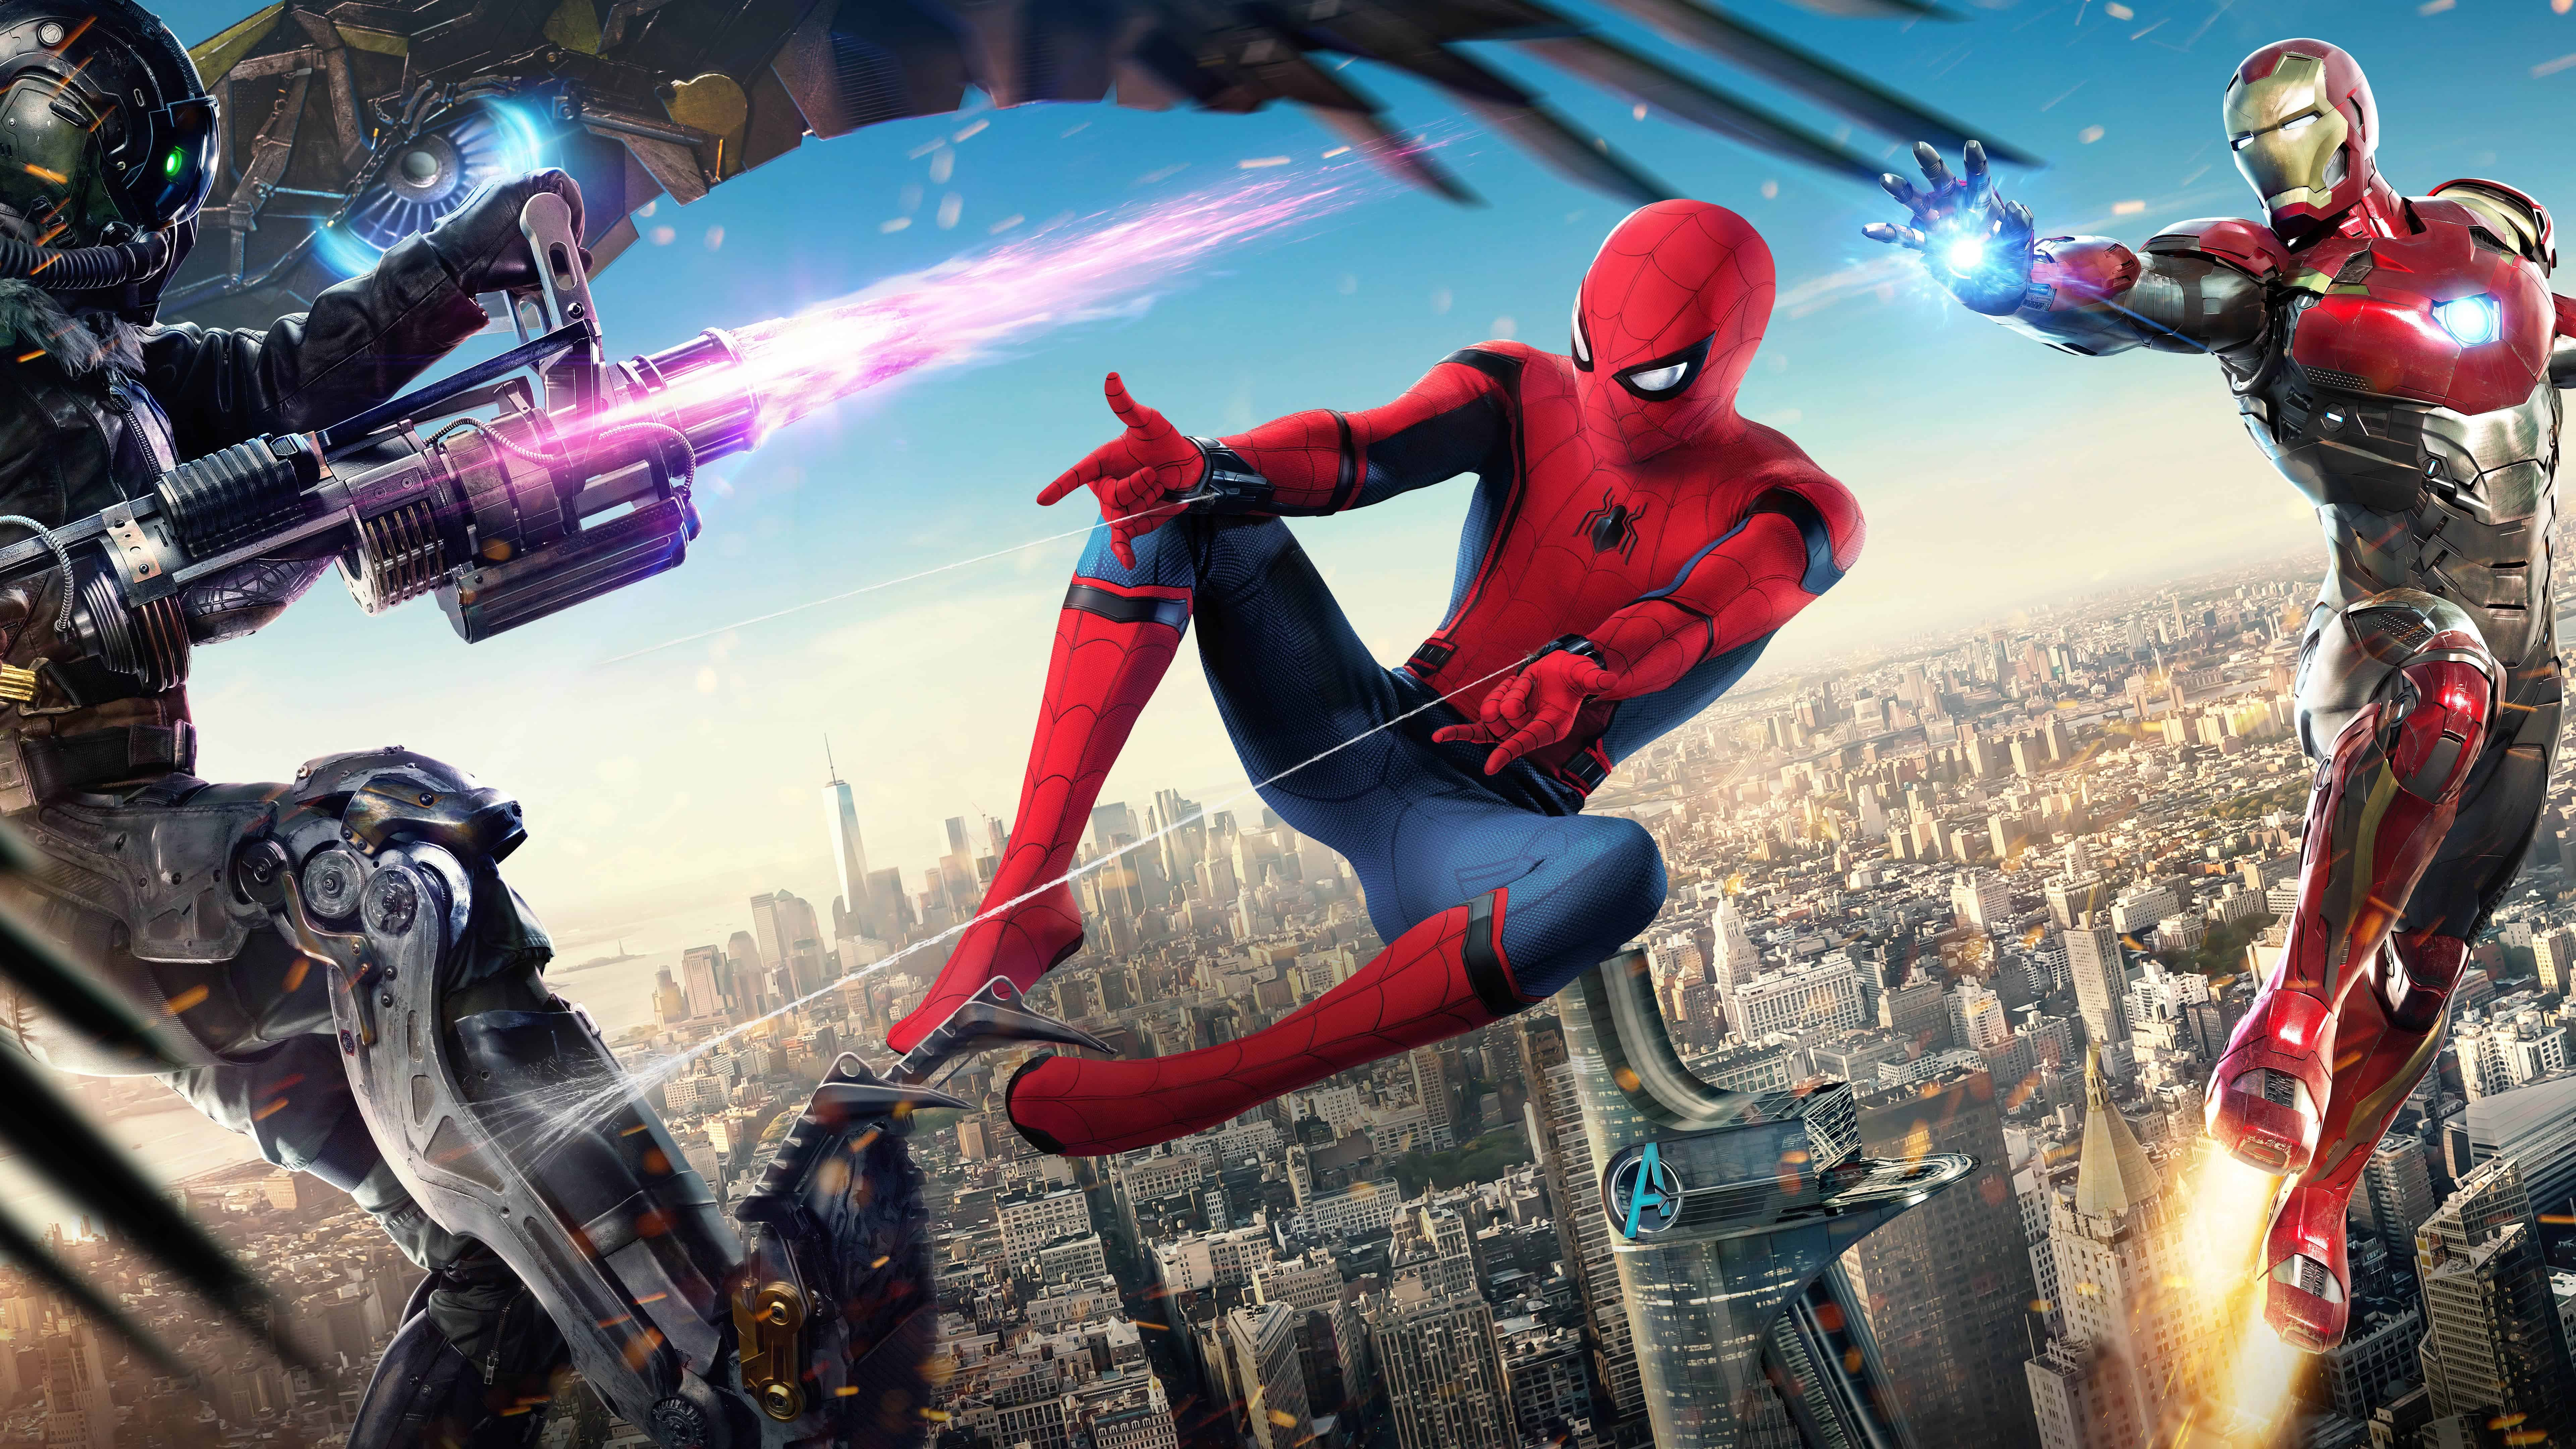 Download Cars Wallpapers For Mobile Spider Man Homecoming Uhd 8k Wallpaper Pixelz